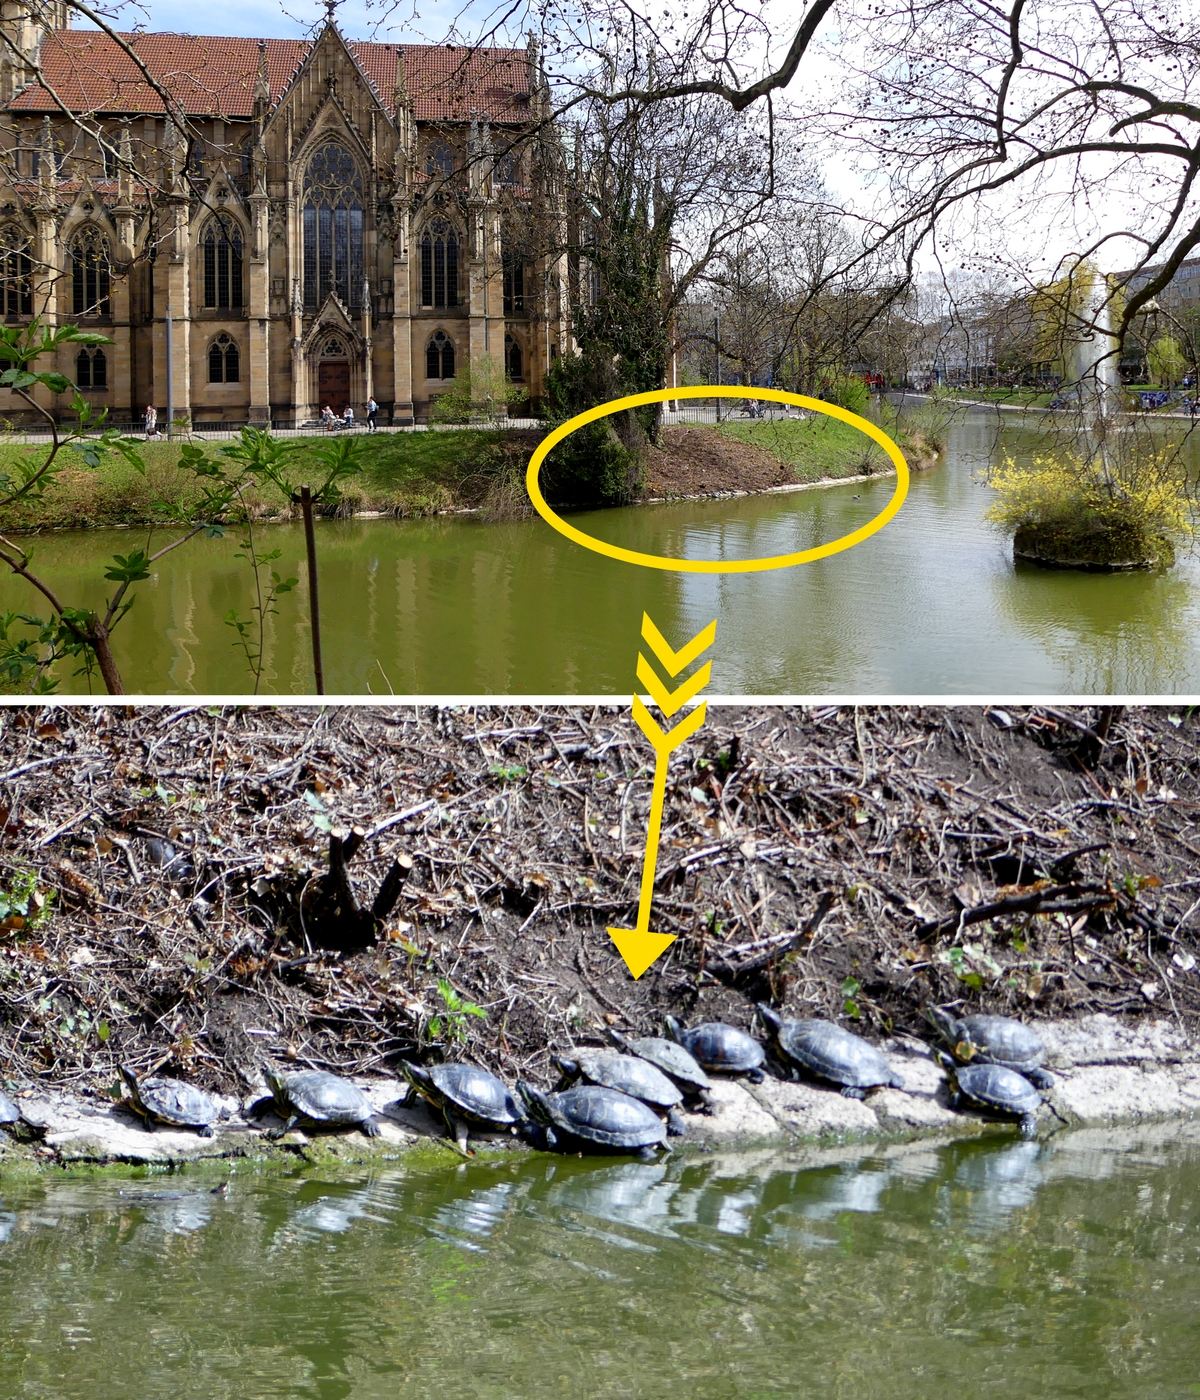 Turtles living happily at Feuersee Stuttgart